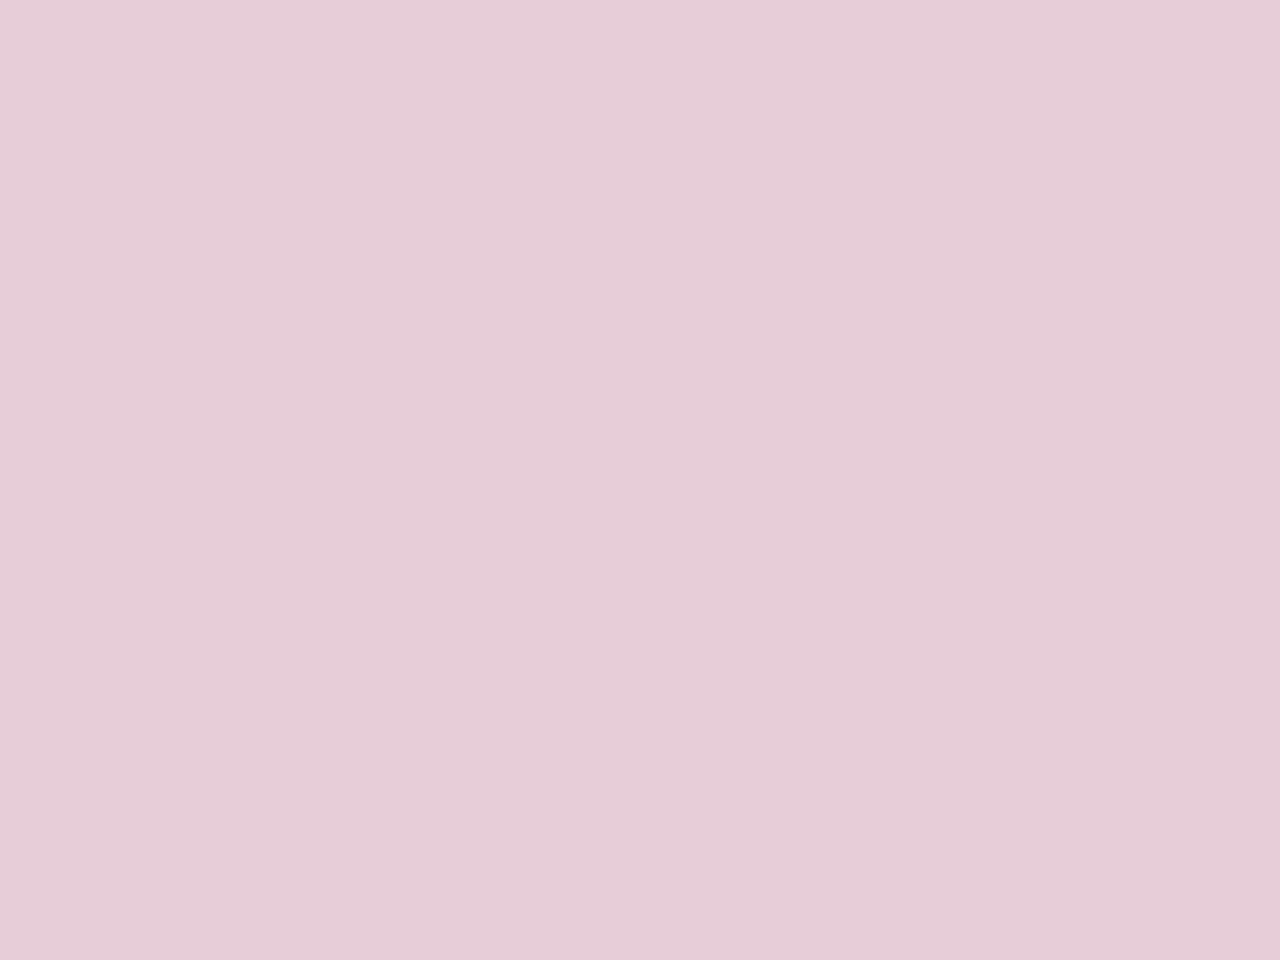 1280x960 Queen Pink Solid Color Background